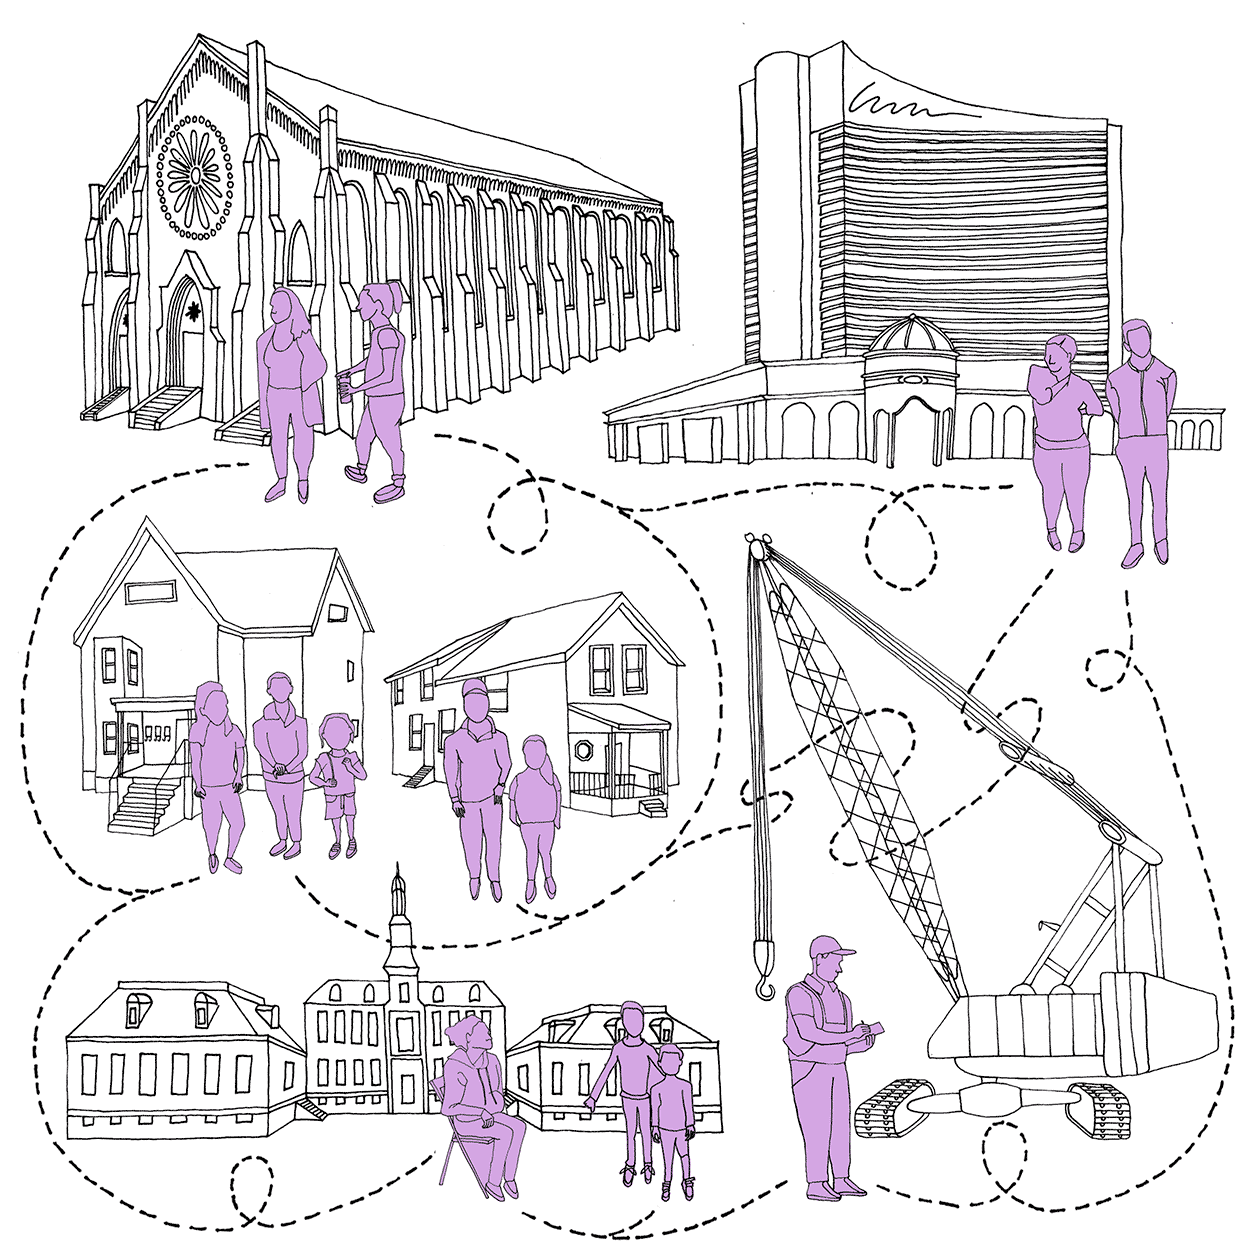 Line drawing with 5 different vignettes (a church, the Everett Casino, houses, government buildings, and a construction crane). People representing neighborhood residents and construction workers stand in front of each vignette. A dotted line connects the people to each other, representing connections of power.